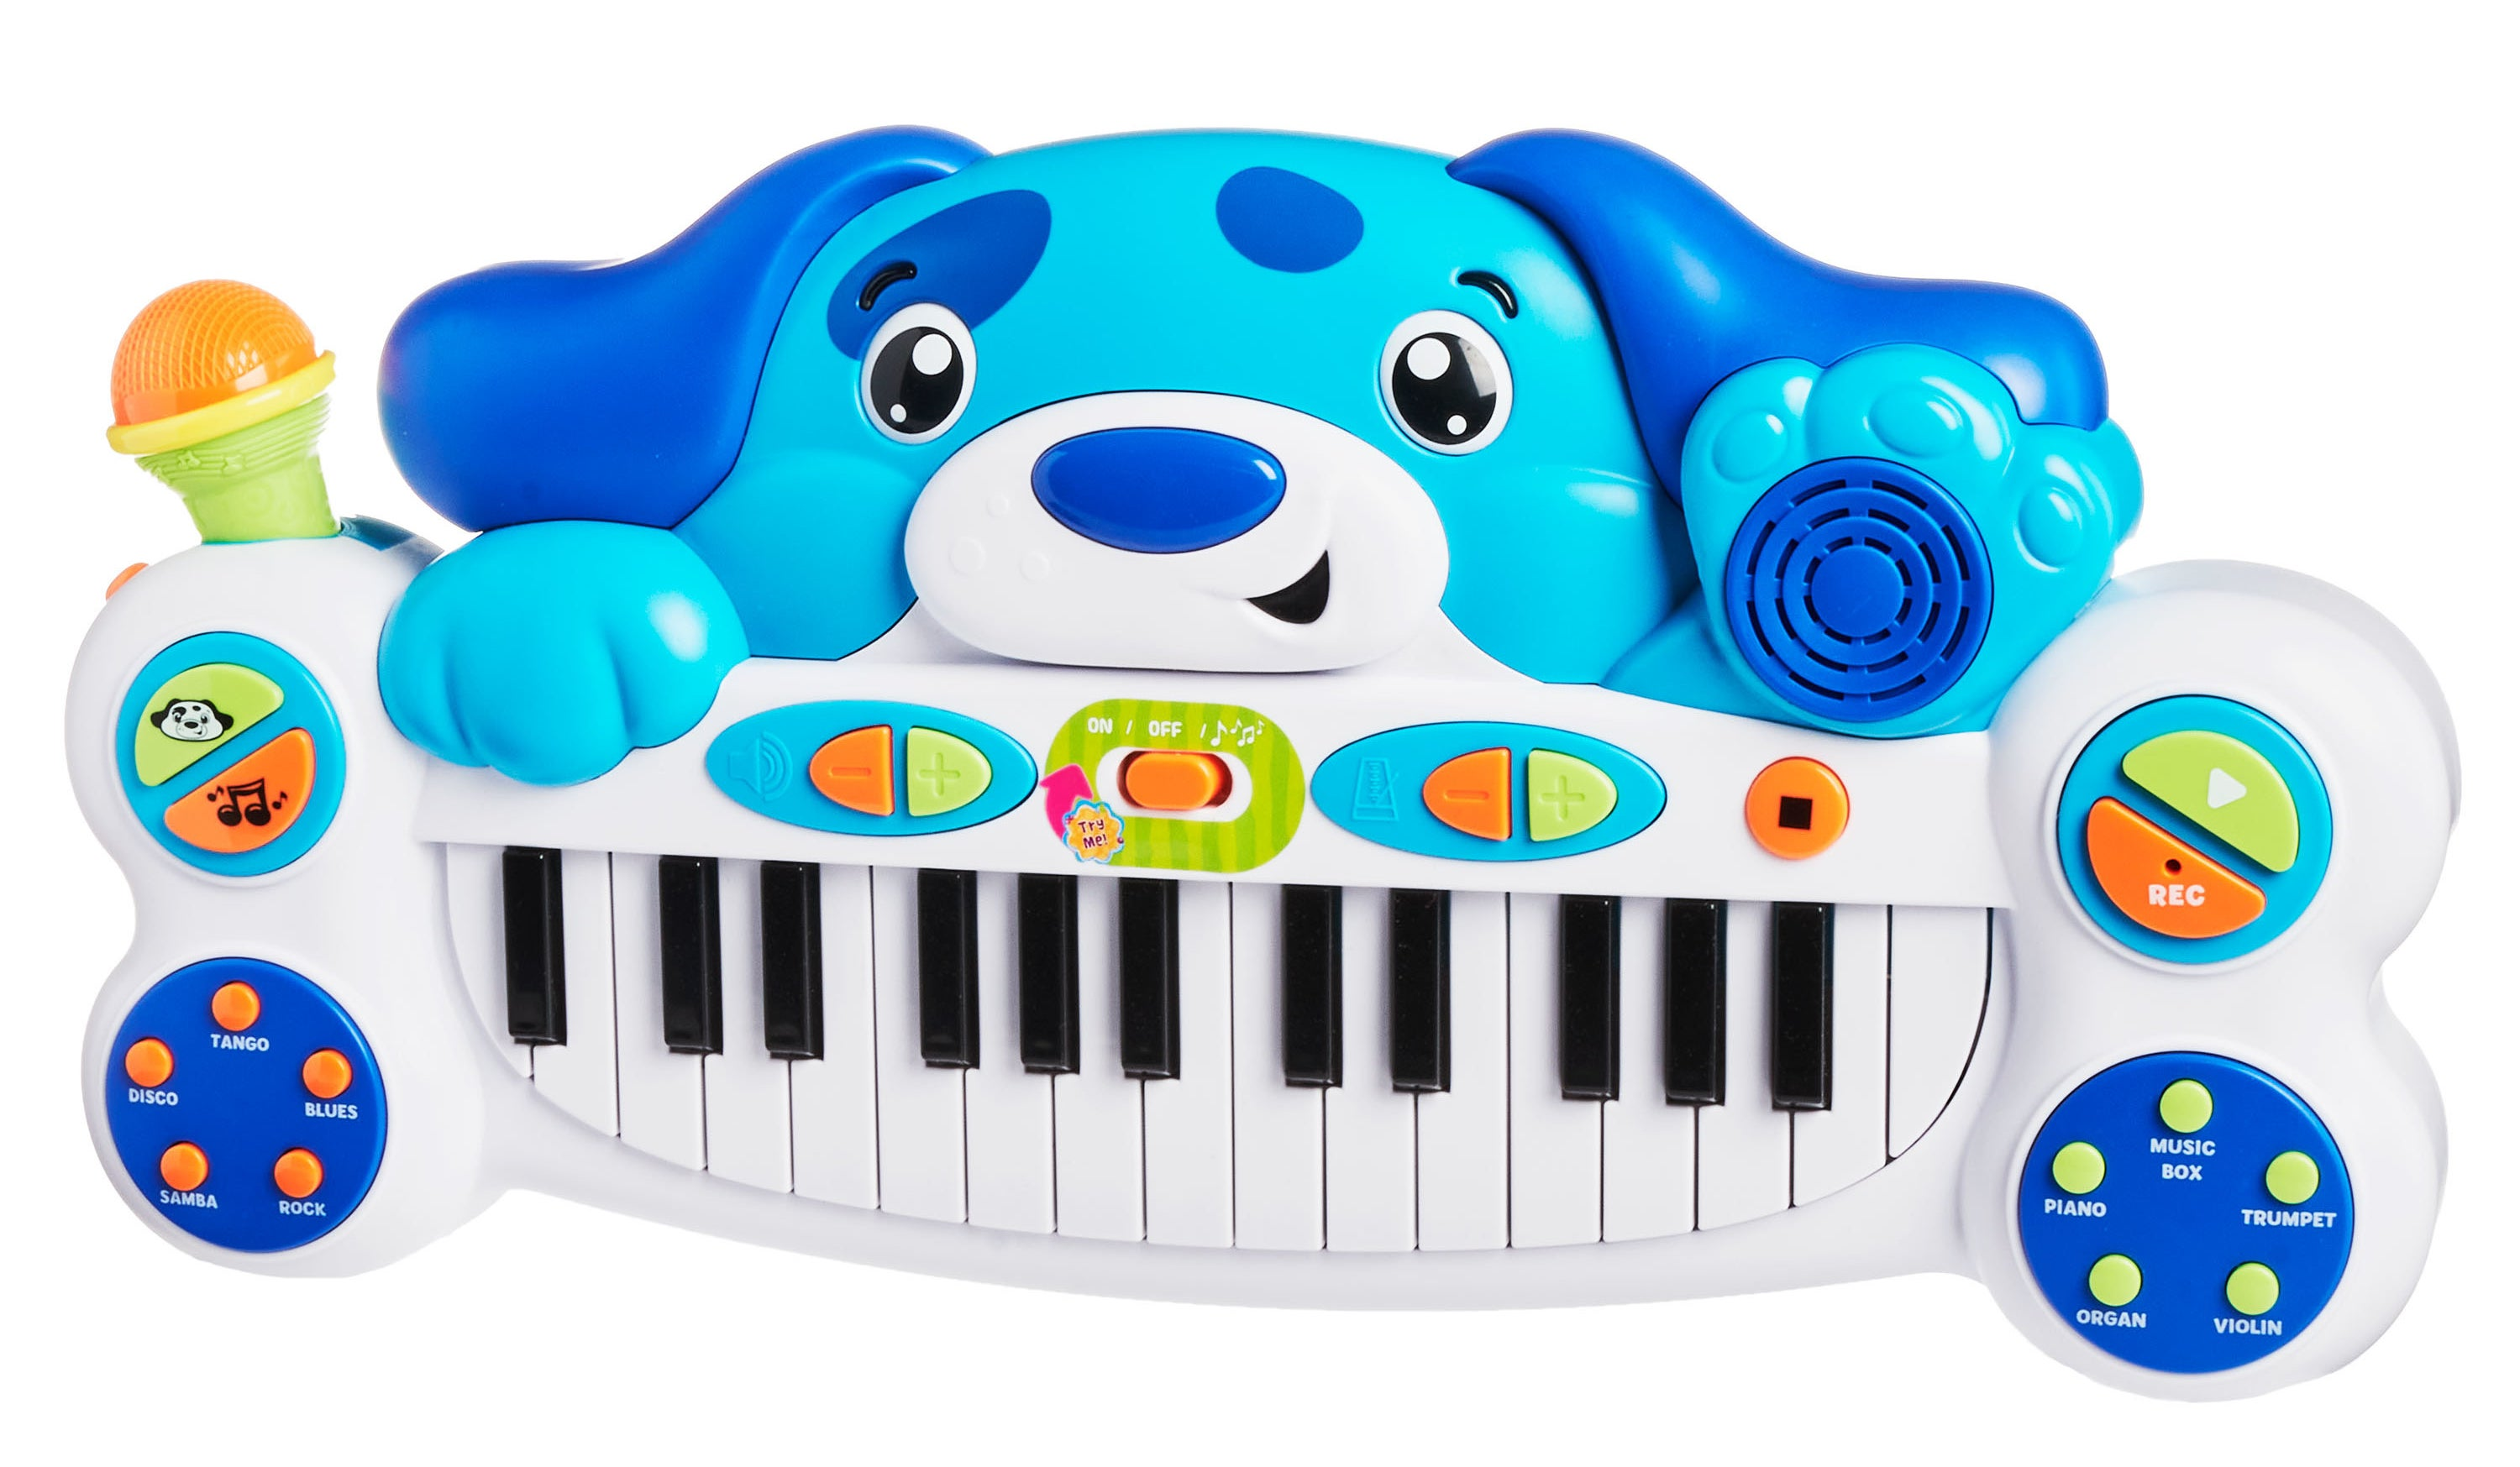 The keyboard, which has piano keys in the center, and tempo, volume, and record settings on the sides, with the big blue puppy head at the top of the keyboard